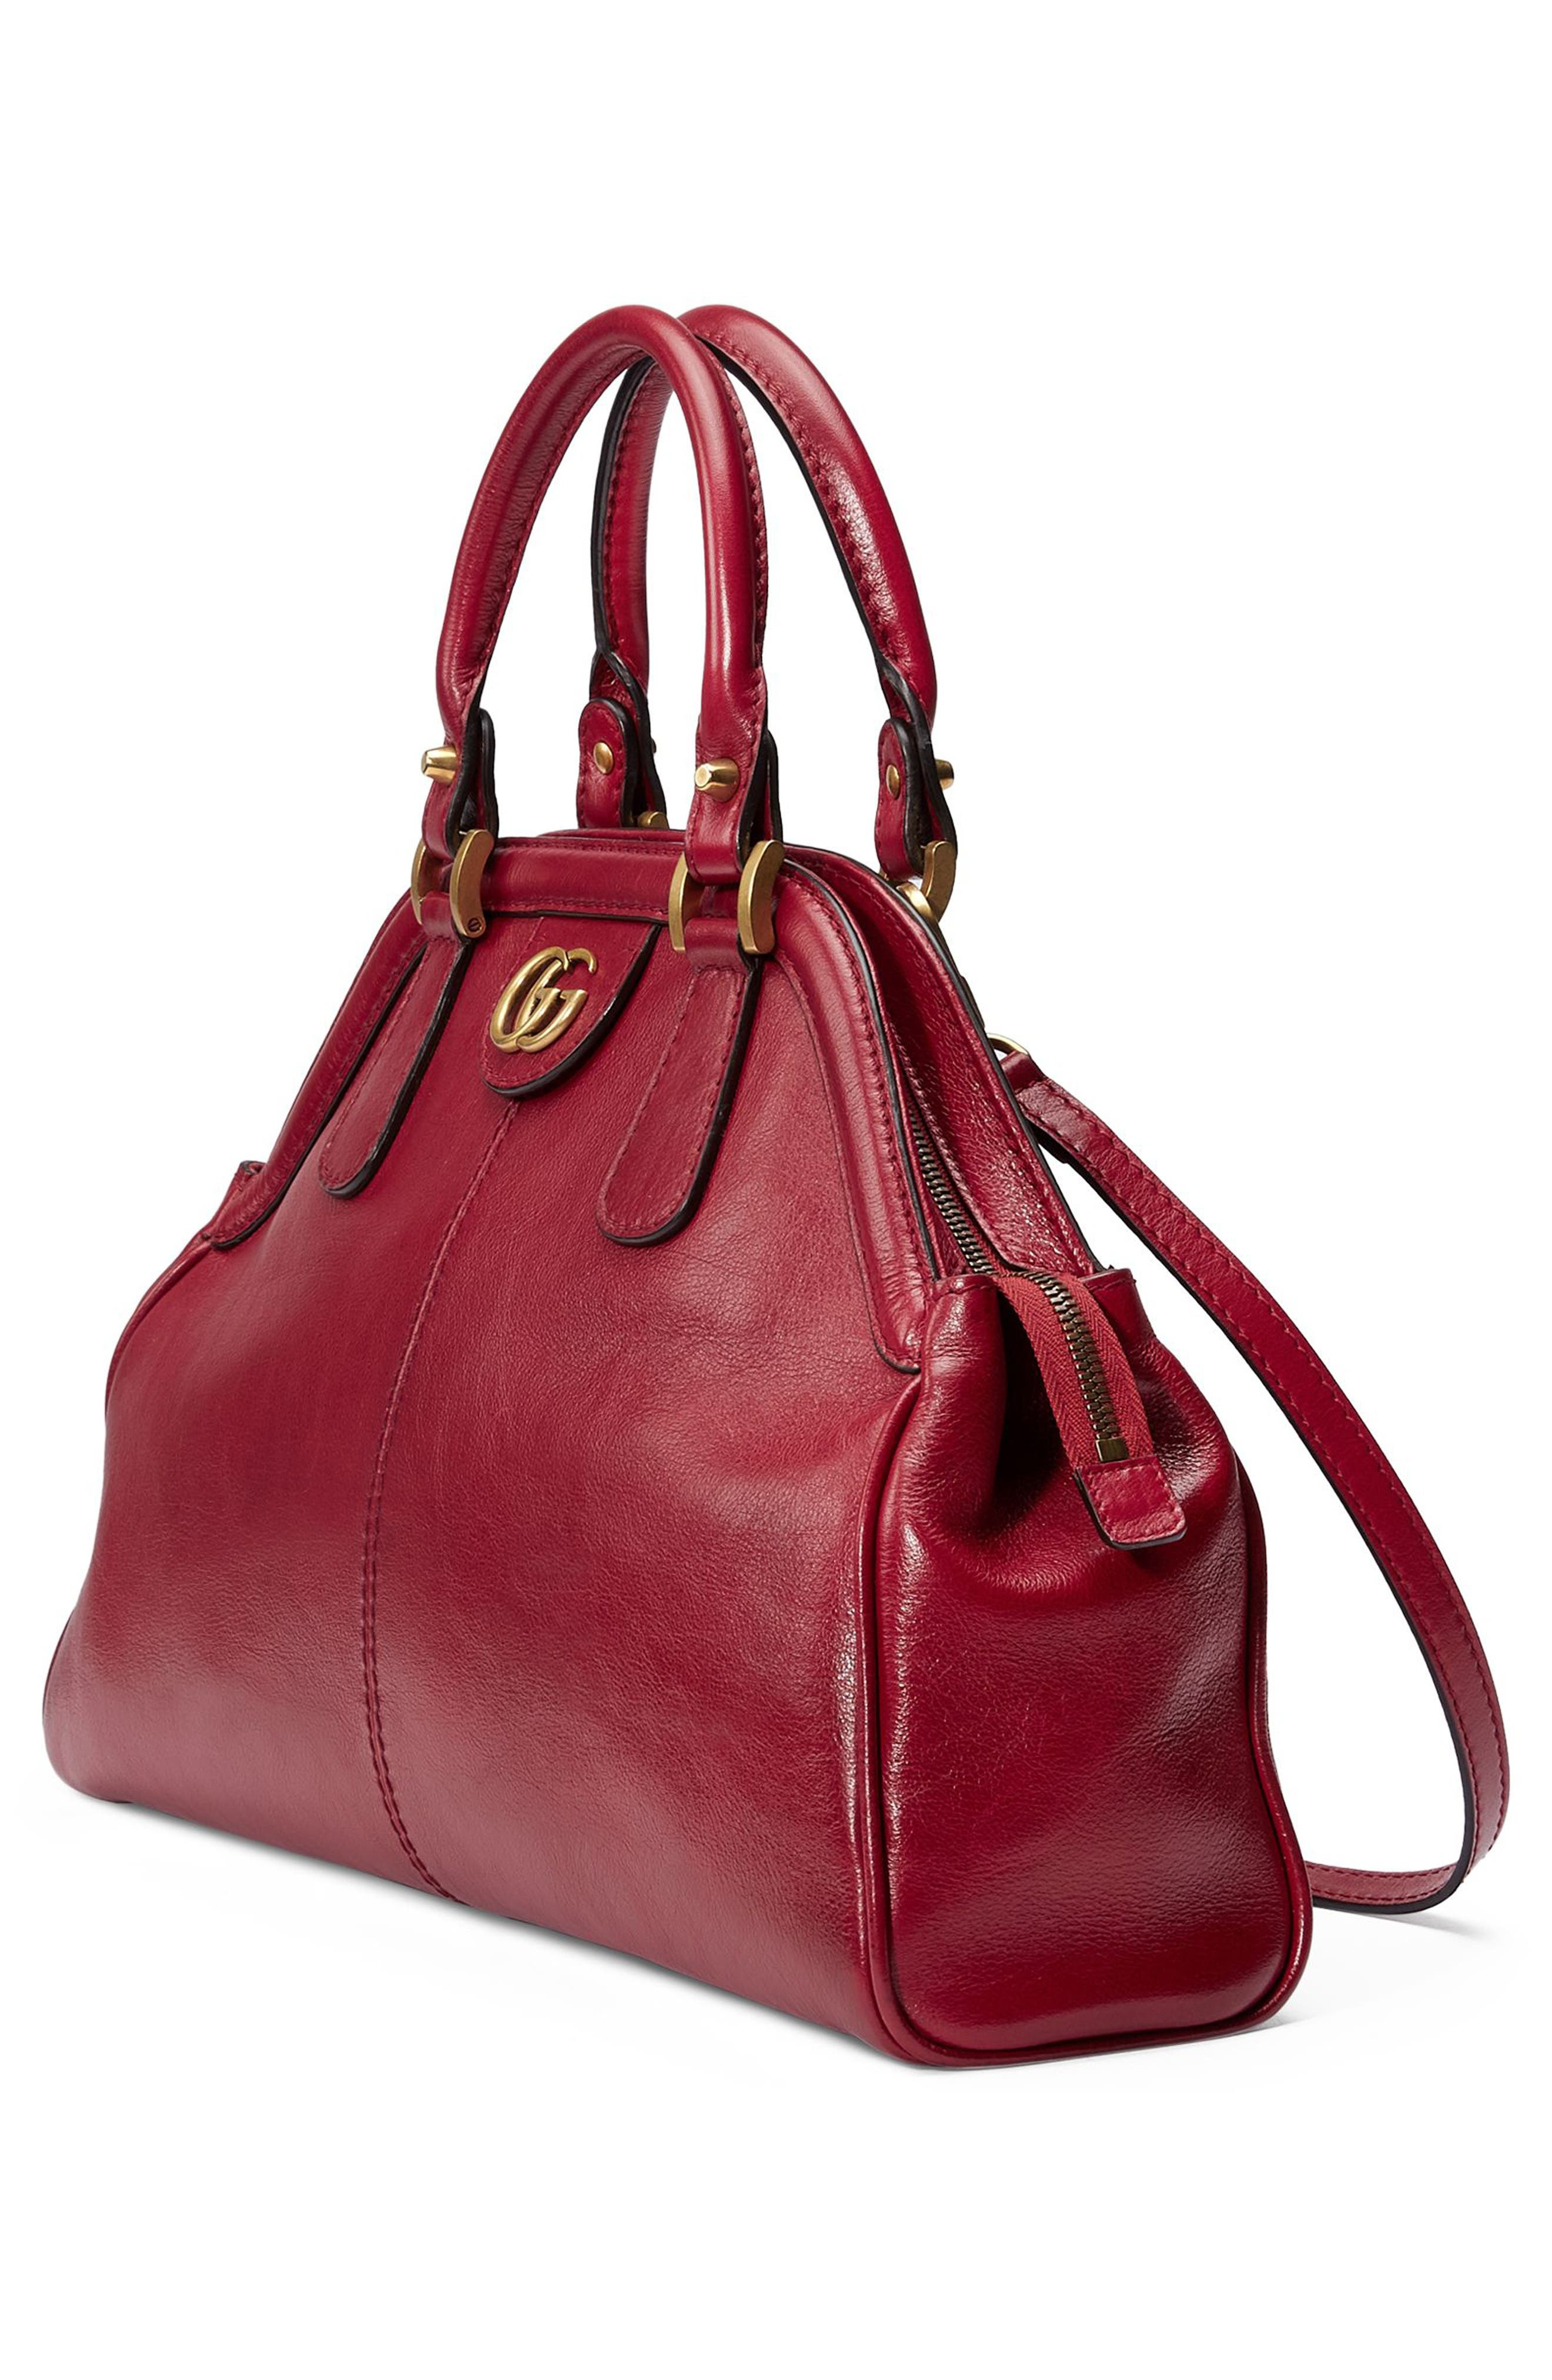 Medium RE(BELLE) Leather Satchel,                             Alternate thumbnail 4, color,                             Romantic Cerise